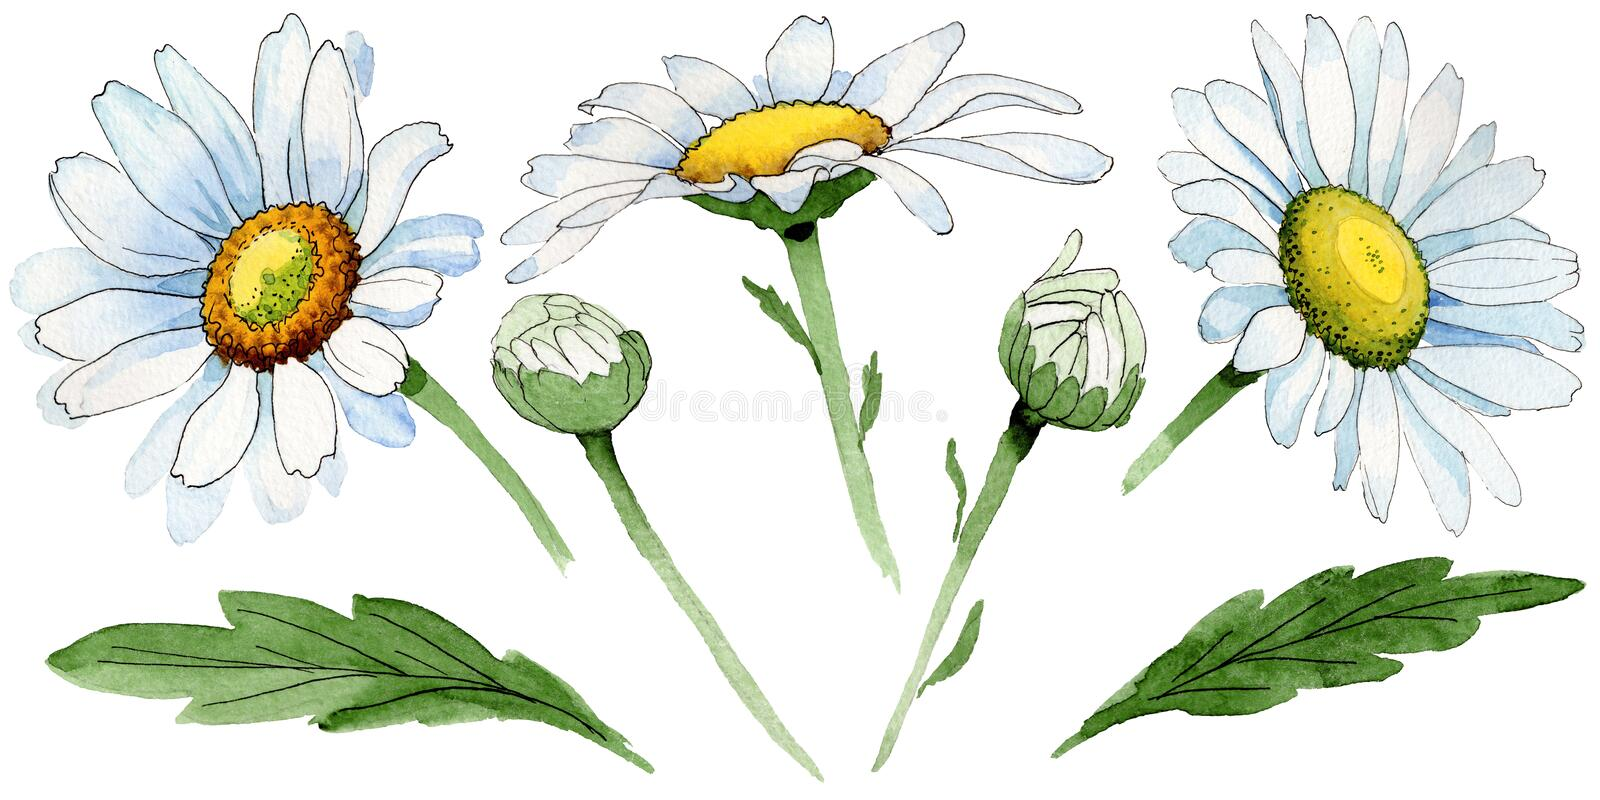 Wildflower chamomile flower in a watercolor style isolated. Full name of the plant: chamomile. Aquarelle wild flower for background, texture, wrapper pattern stock illustration